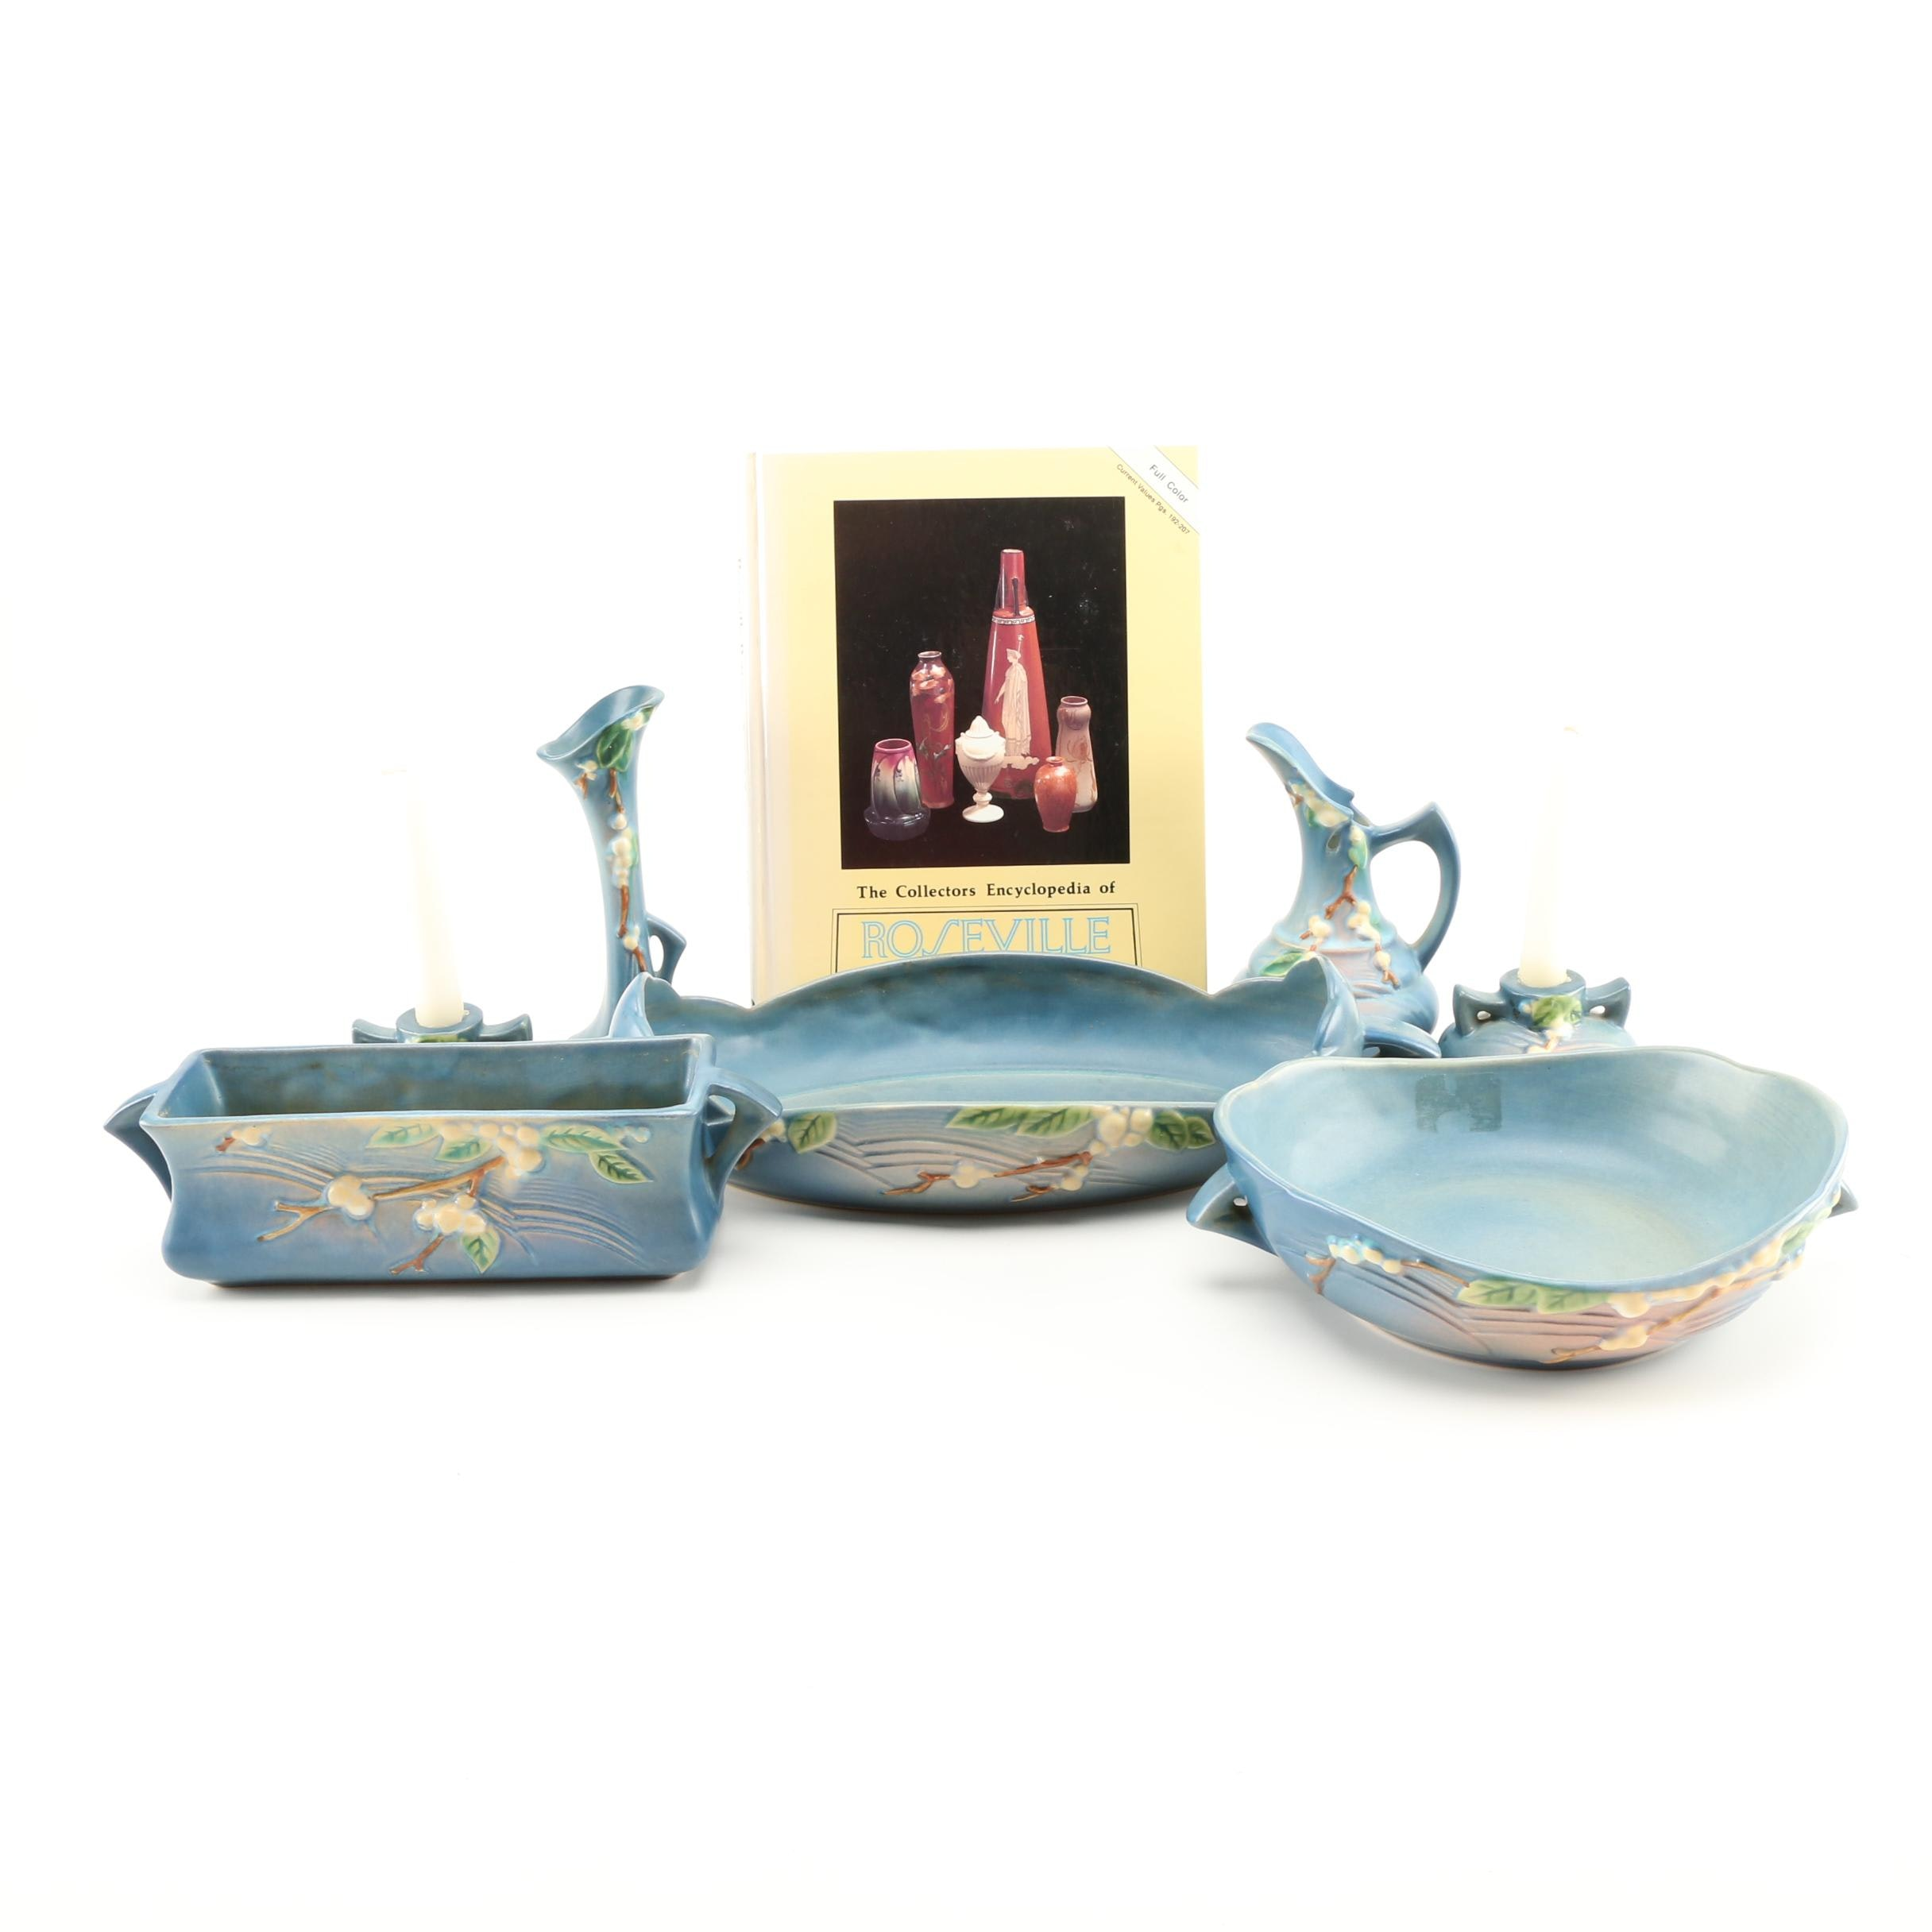 Roseville Pottery With Collectors Encyclopedia